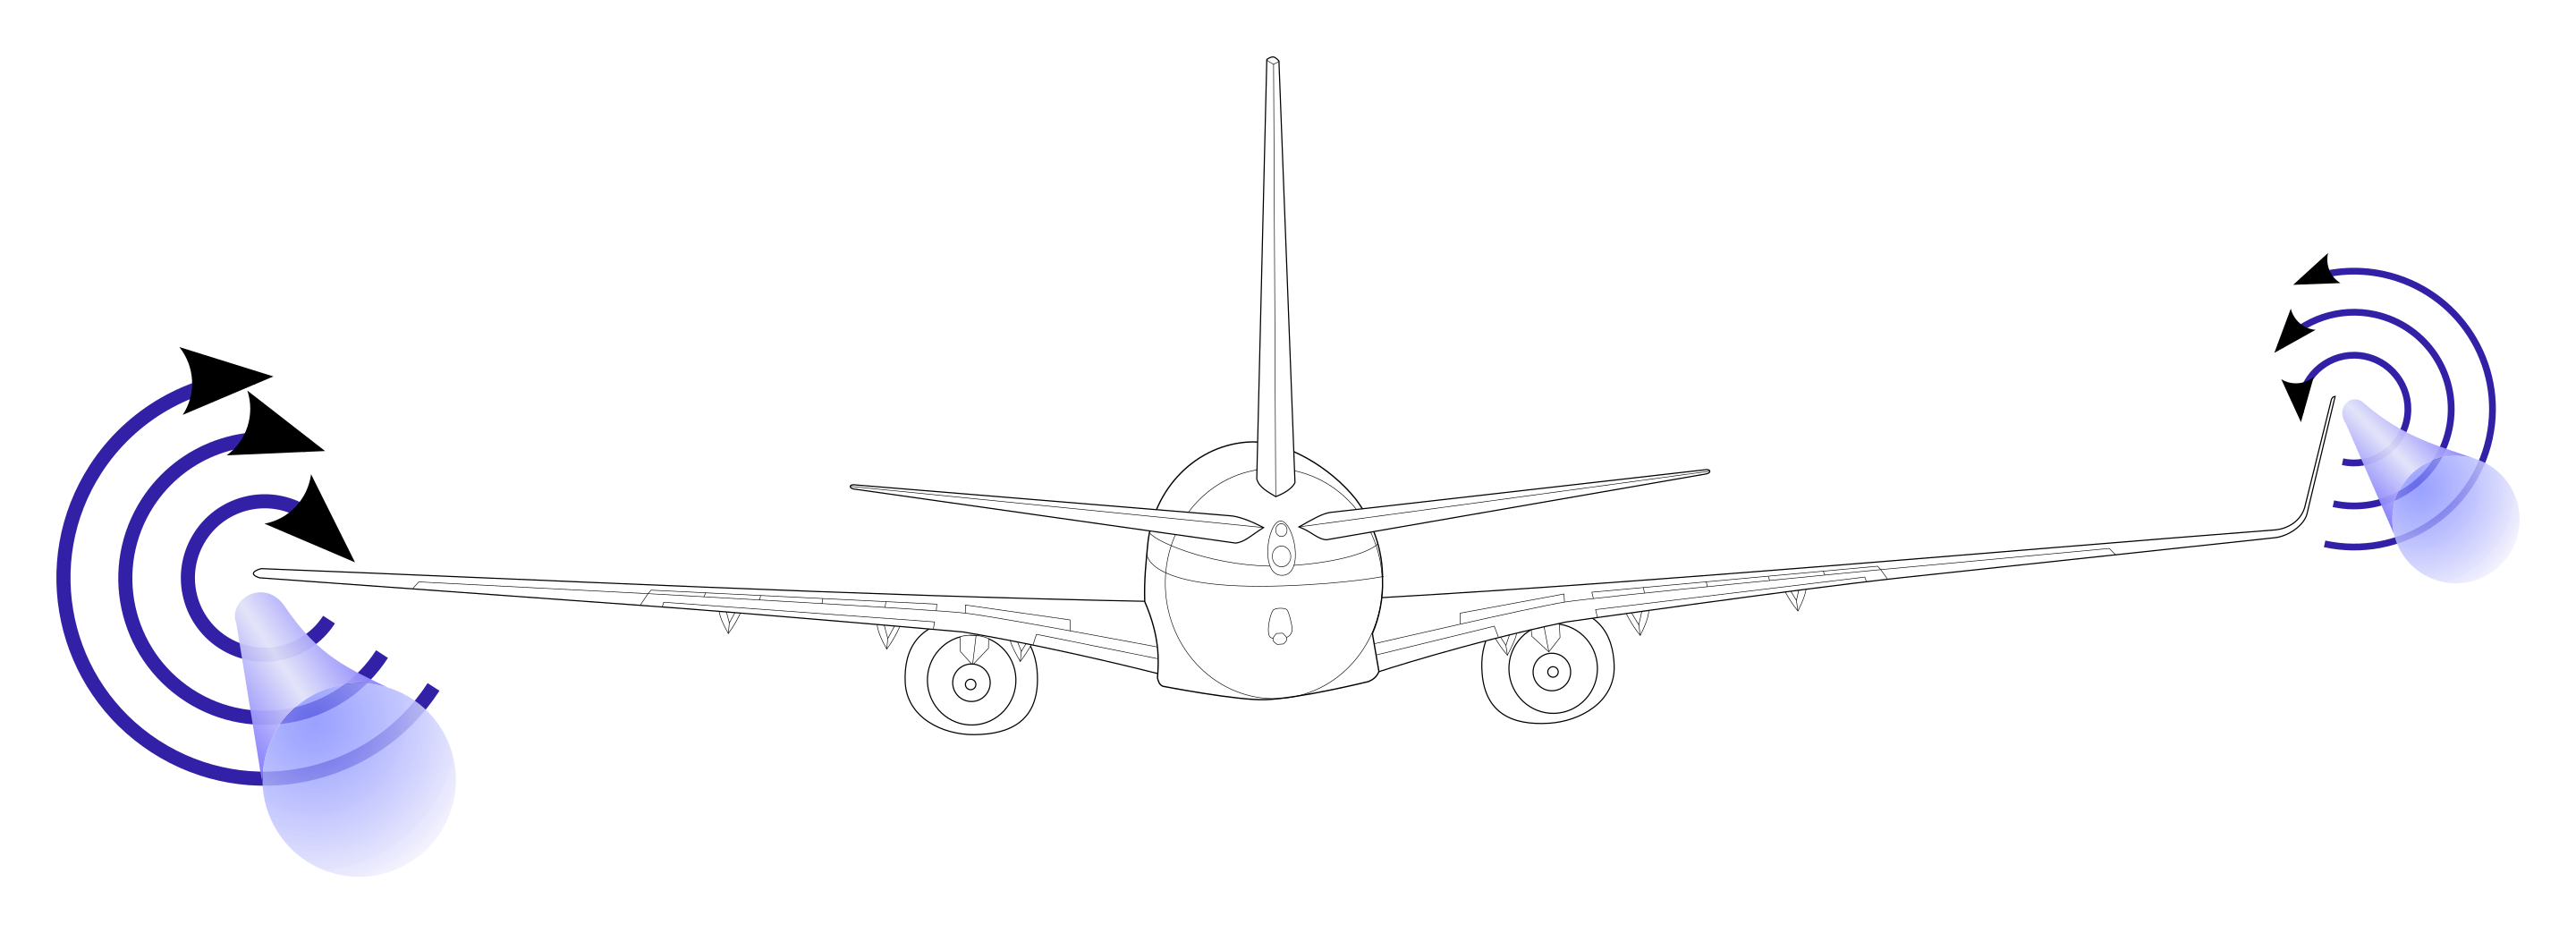 2880px-737-NG_winglet_effect_(simplified